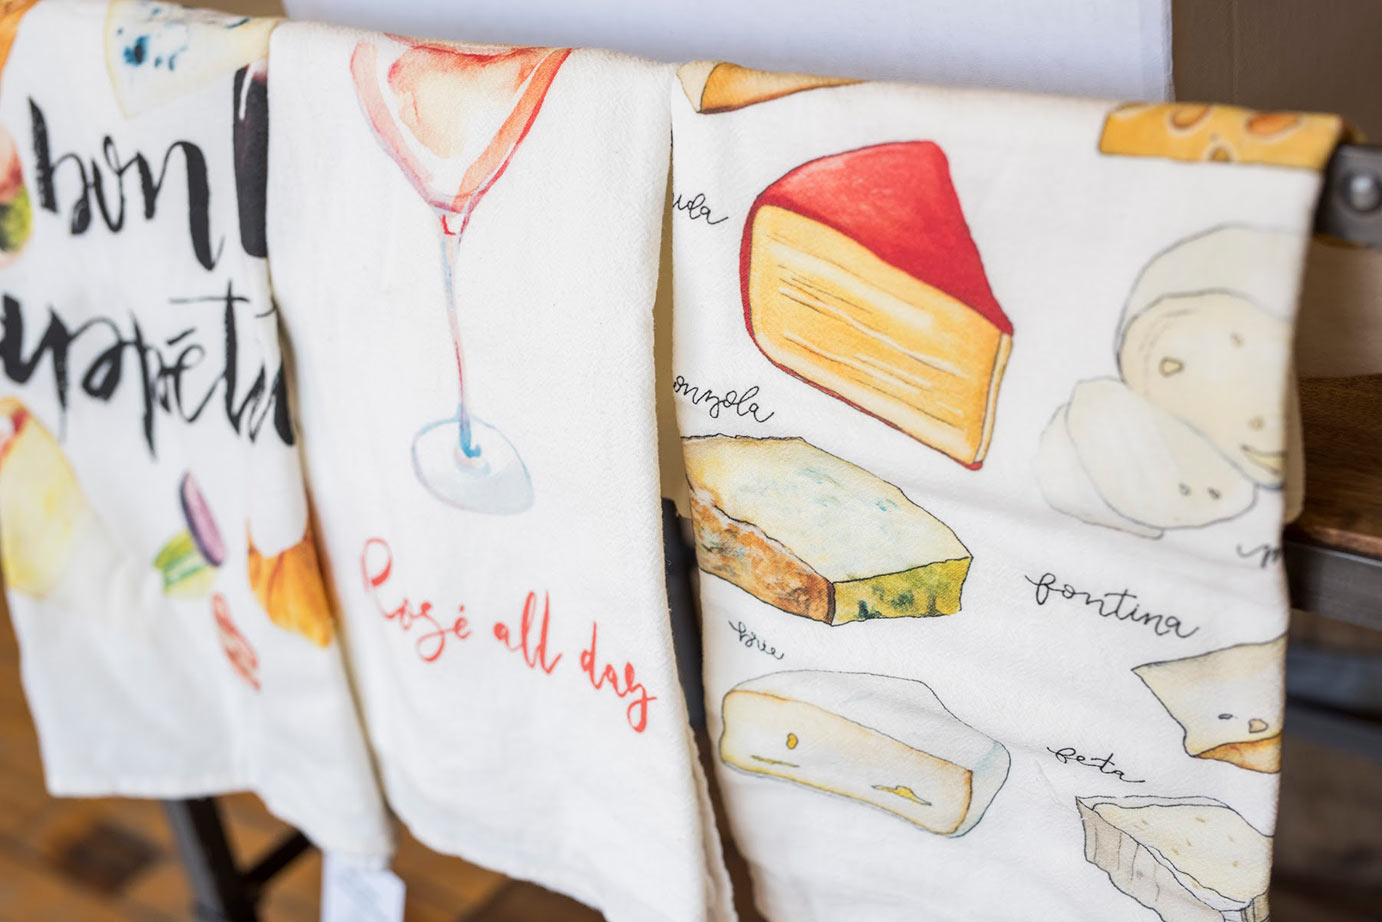 clothes with drawings